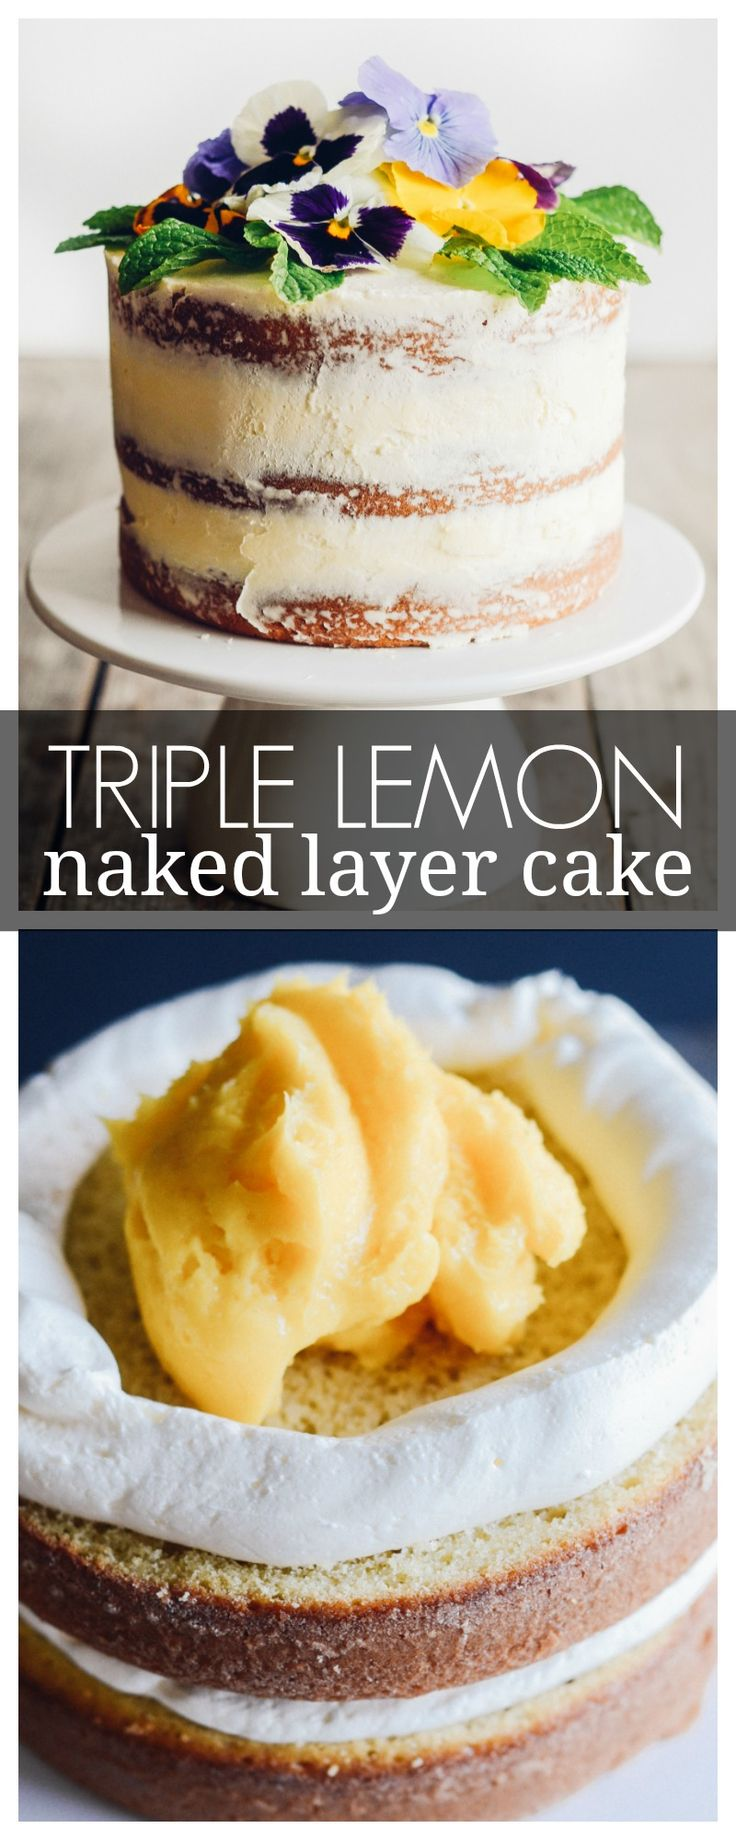 Triple Lemon Naked Layer Cake Recipe - this one's for lemon lovers. It has it in three places: in the cake batter, the filling, and the frosting. So yummy!